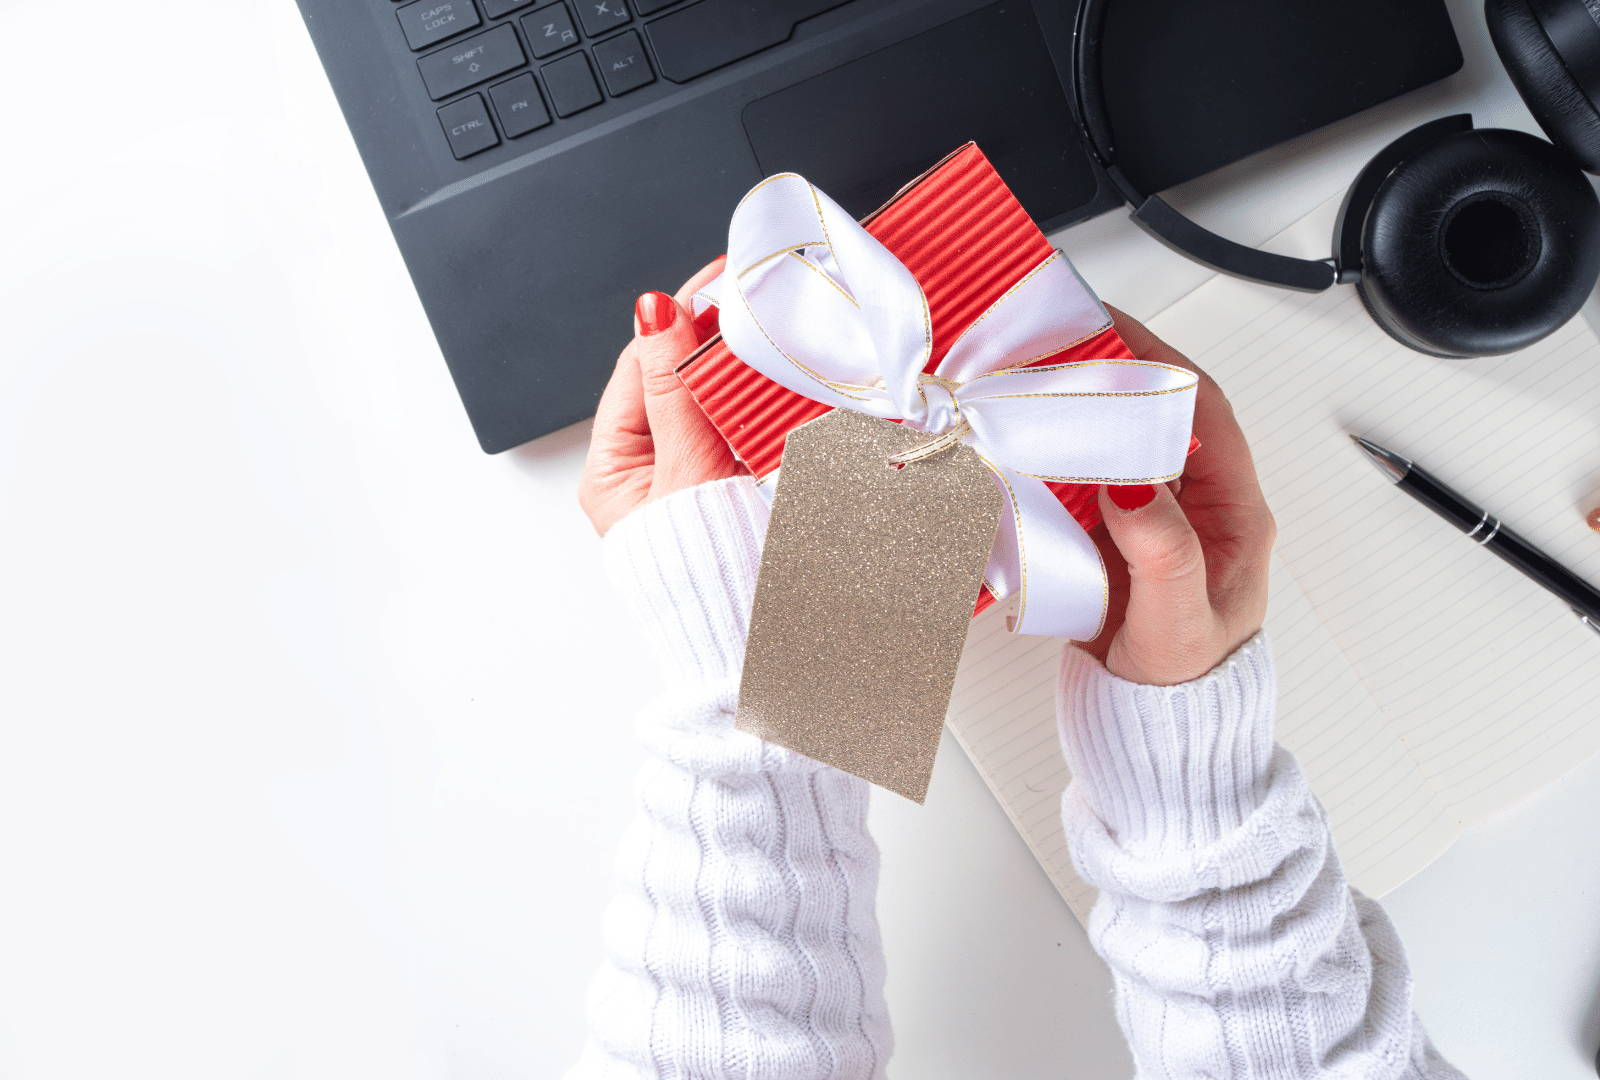 corporate client holding red gift box with a white ribbon. Computer and headphones in background on table.